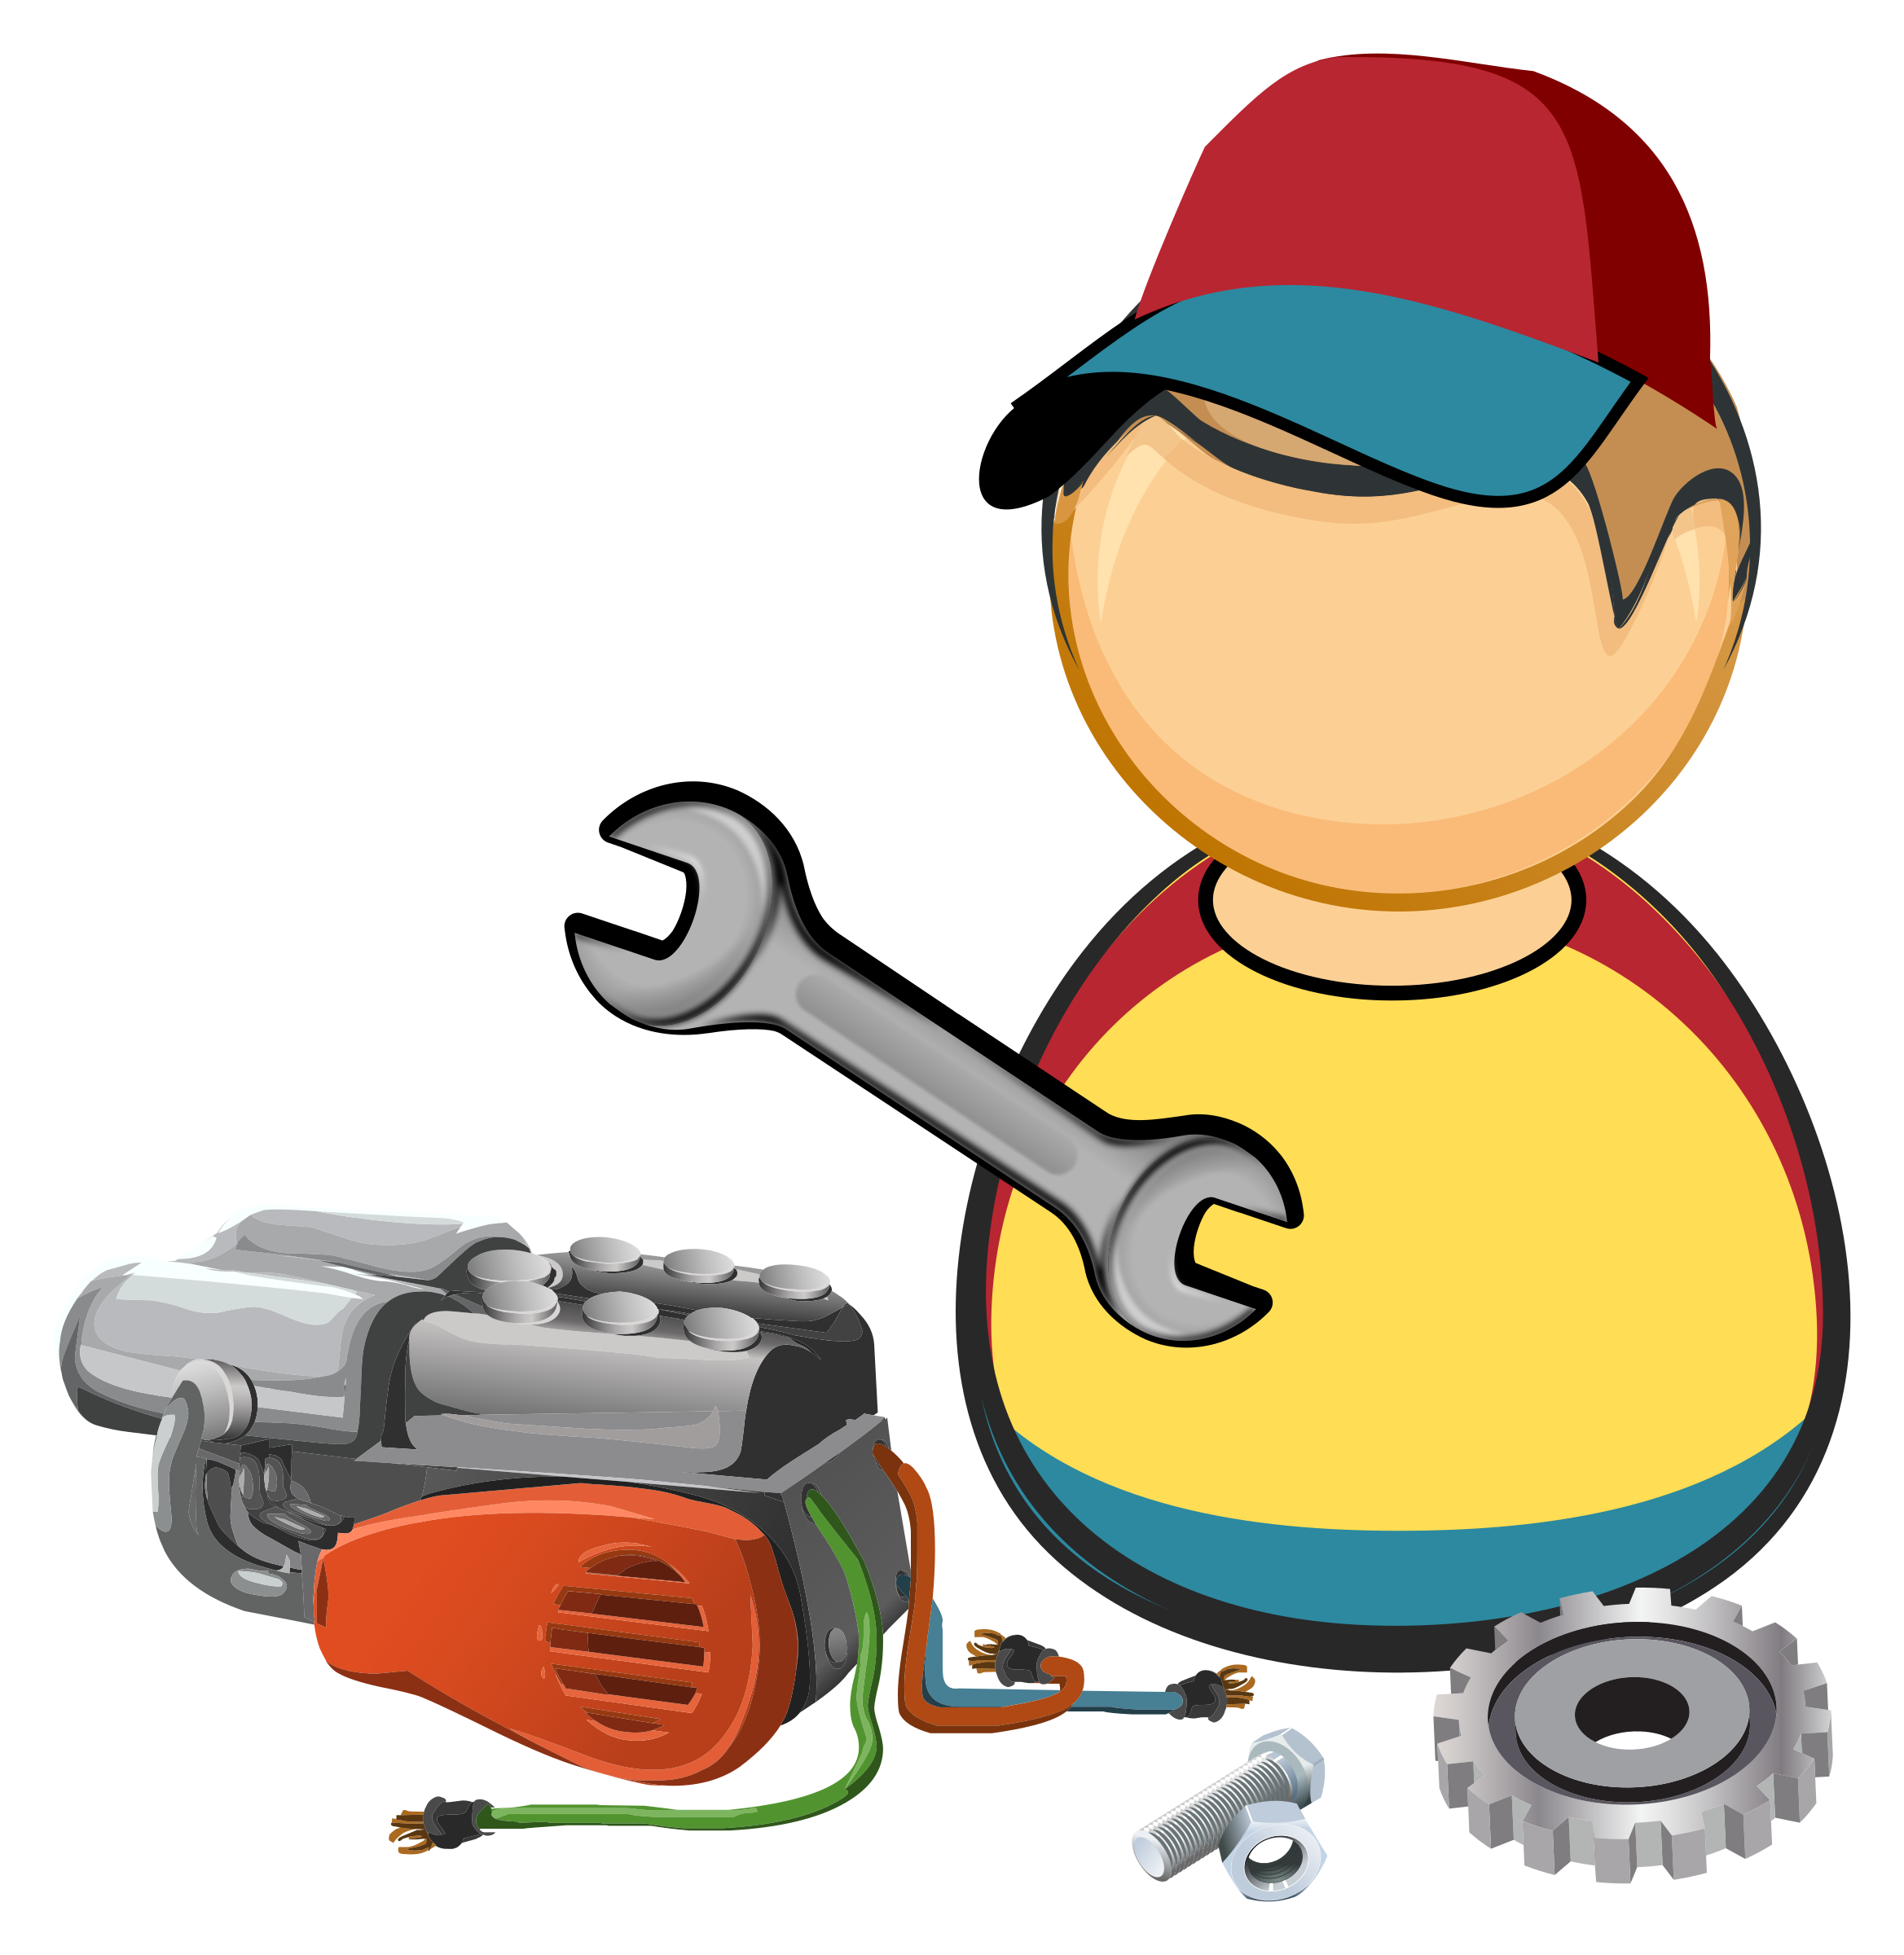 Person clipart car. Automotive mechanic big image